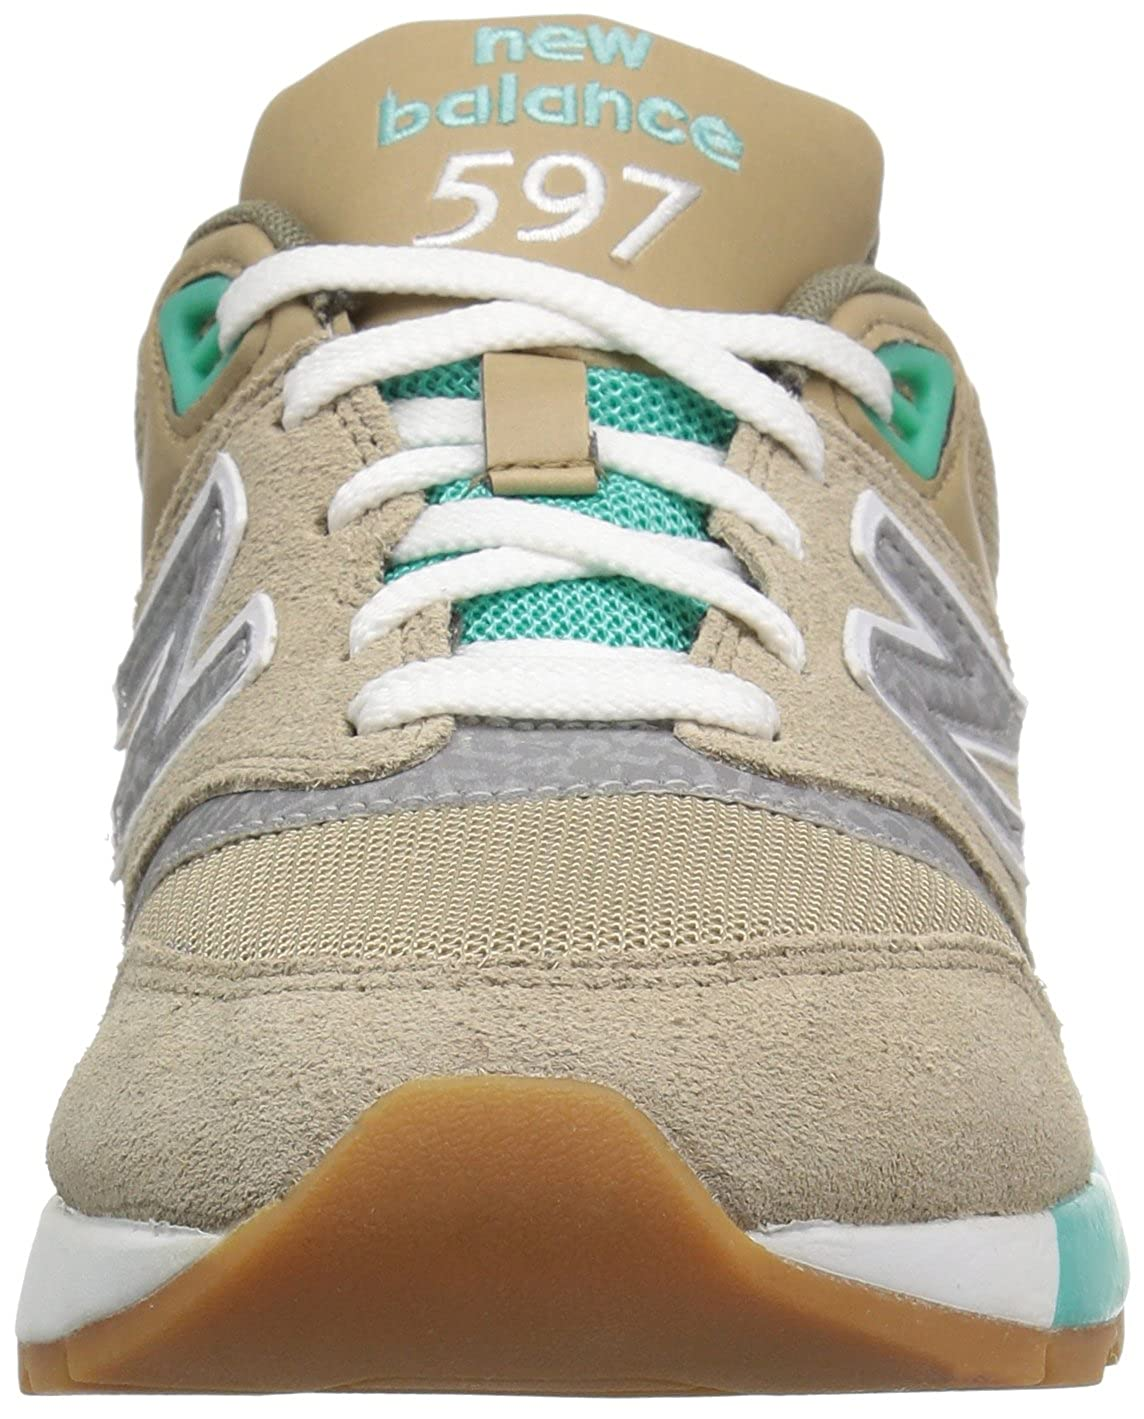 New Traditional Balance Men's ML597 90's Traditional New Fashion Sneaker Beige b13c87